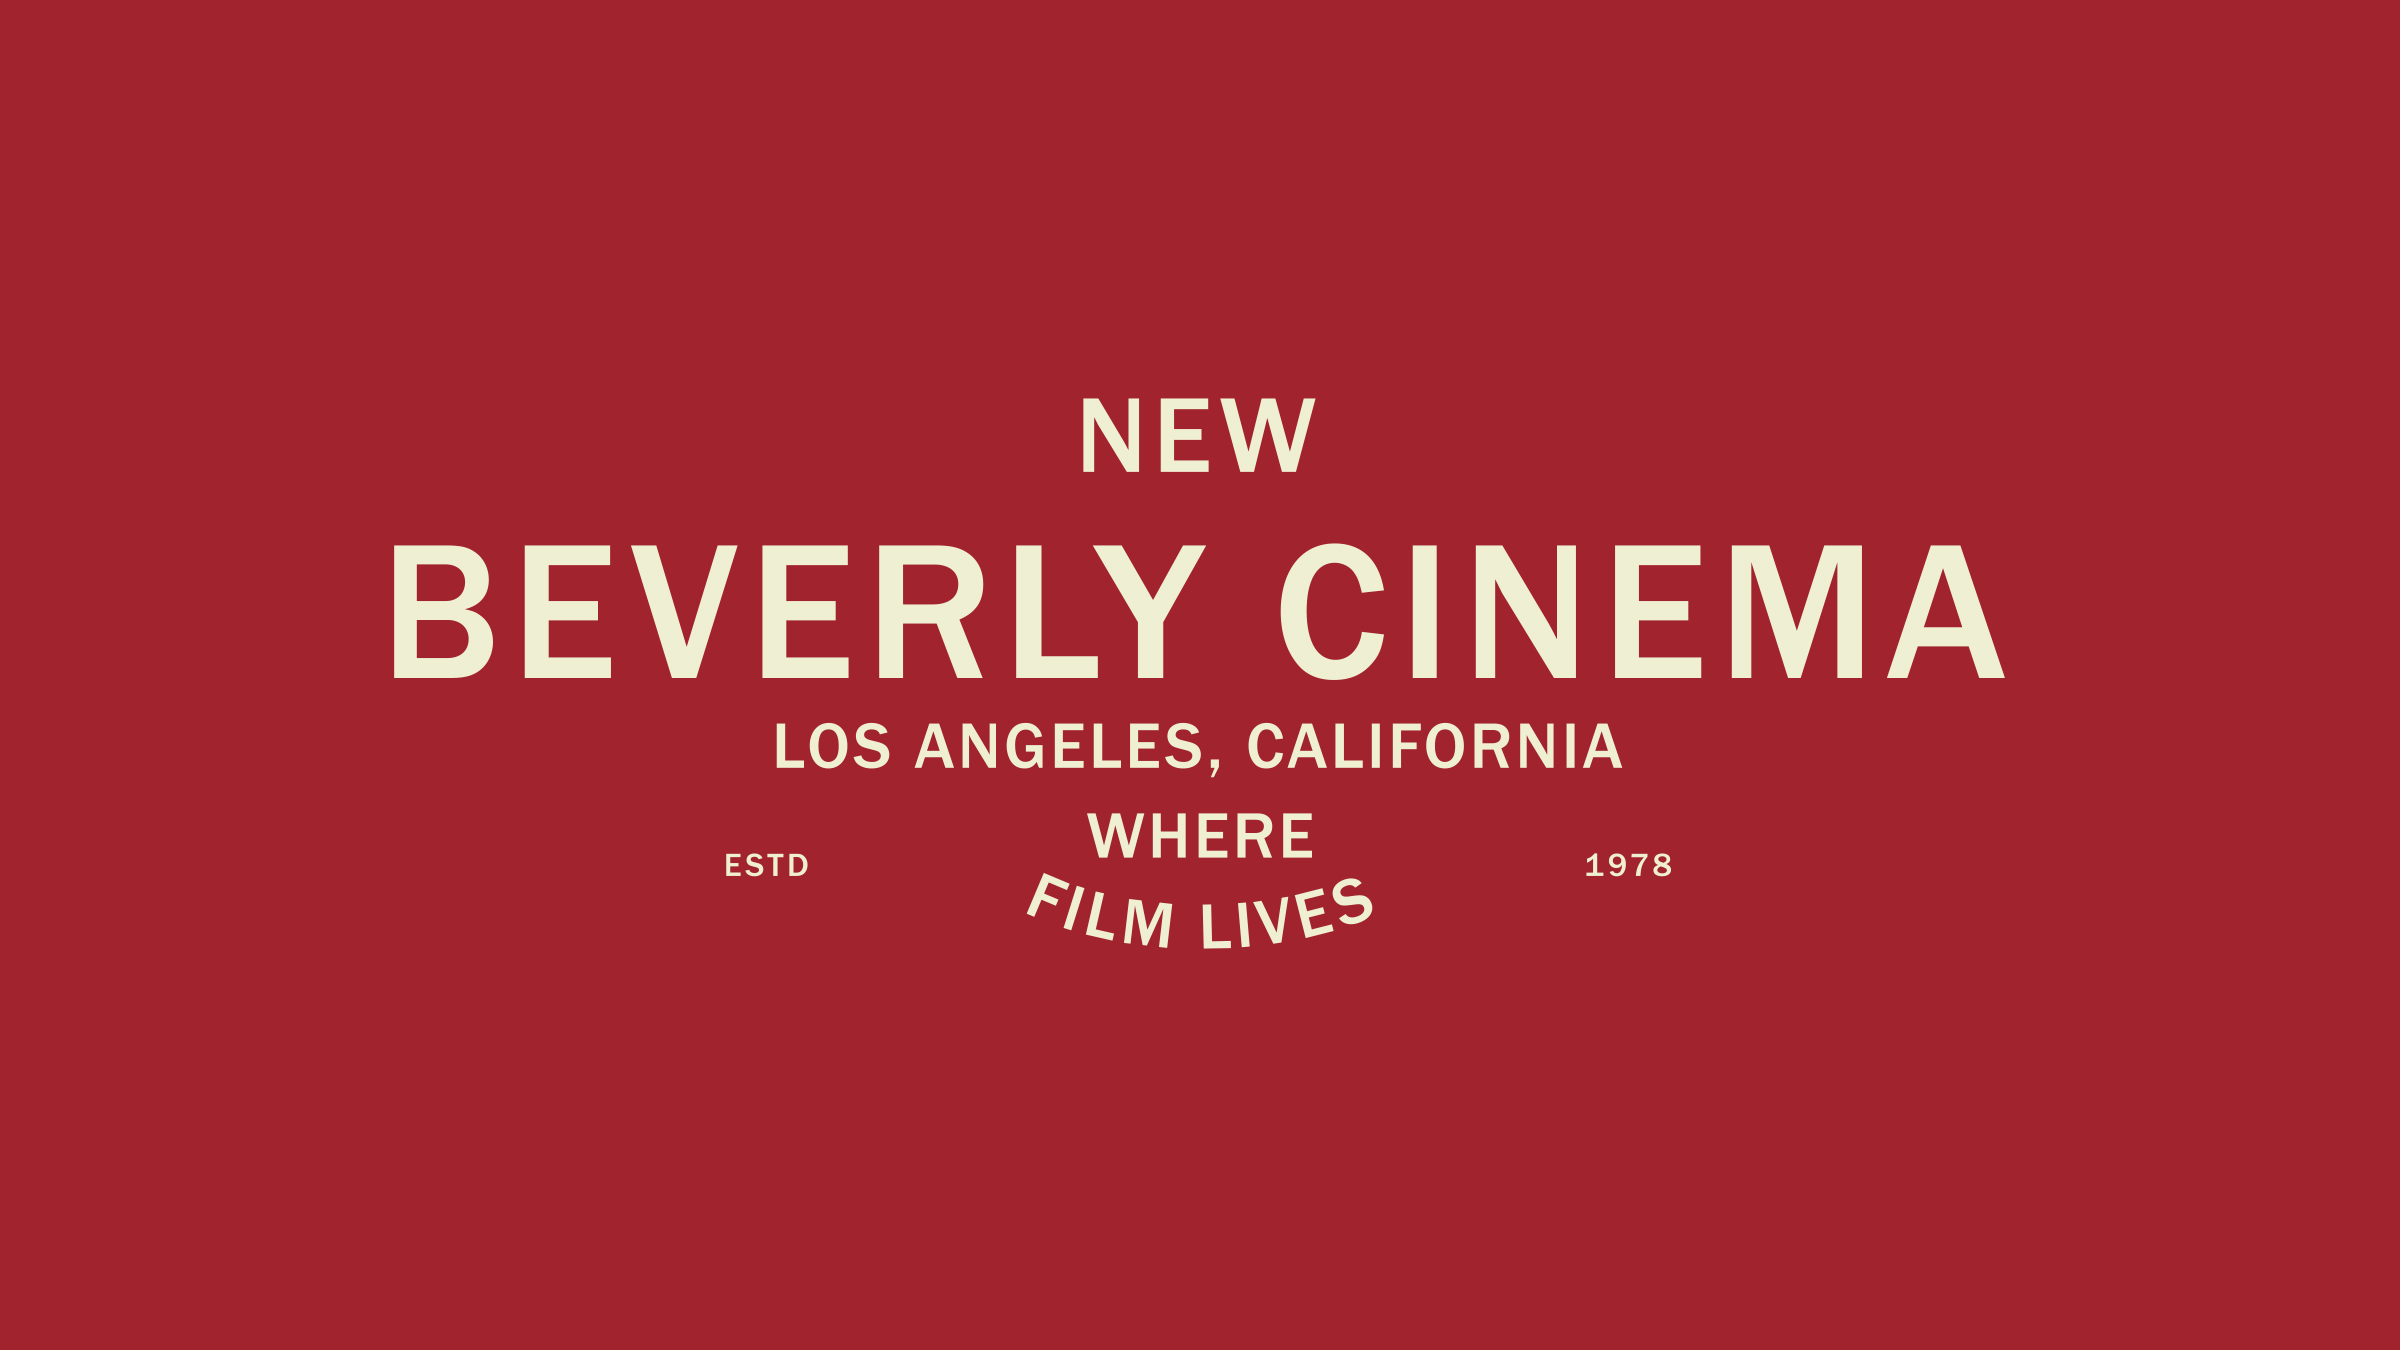 New Bev Cinema brand logo cream on red